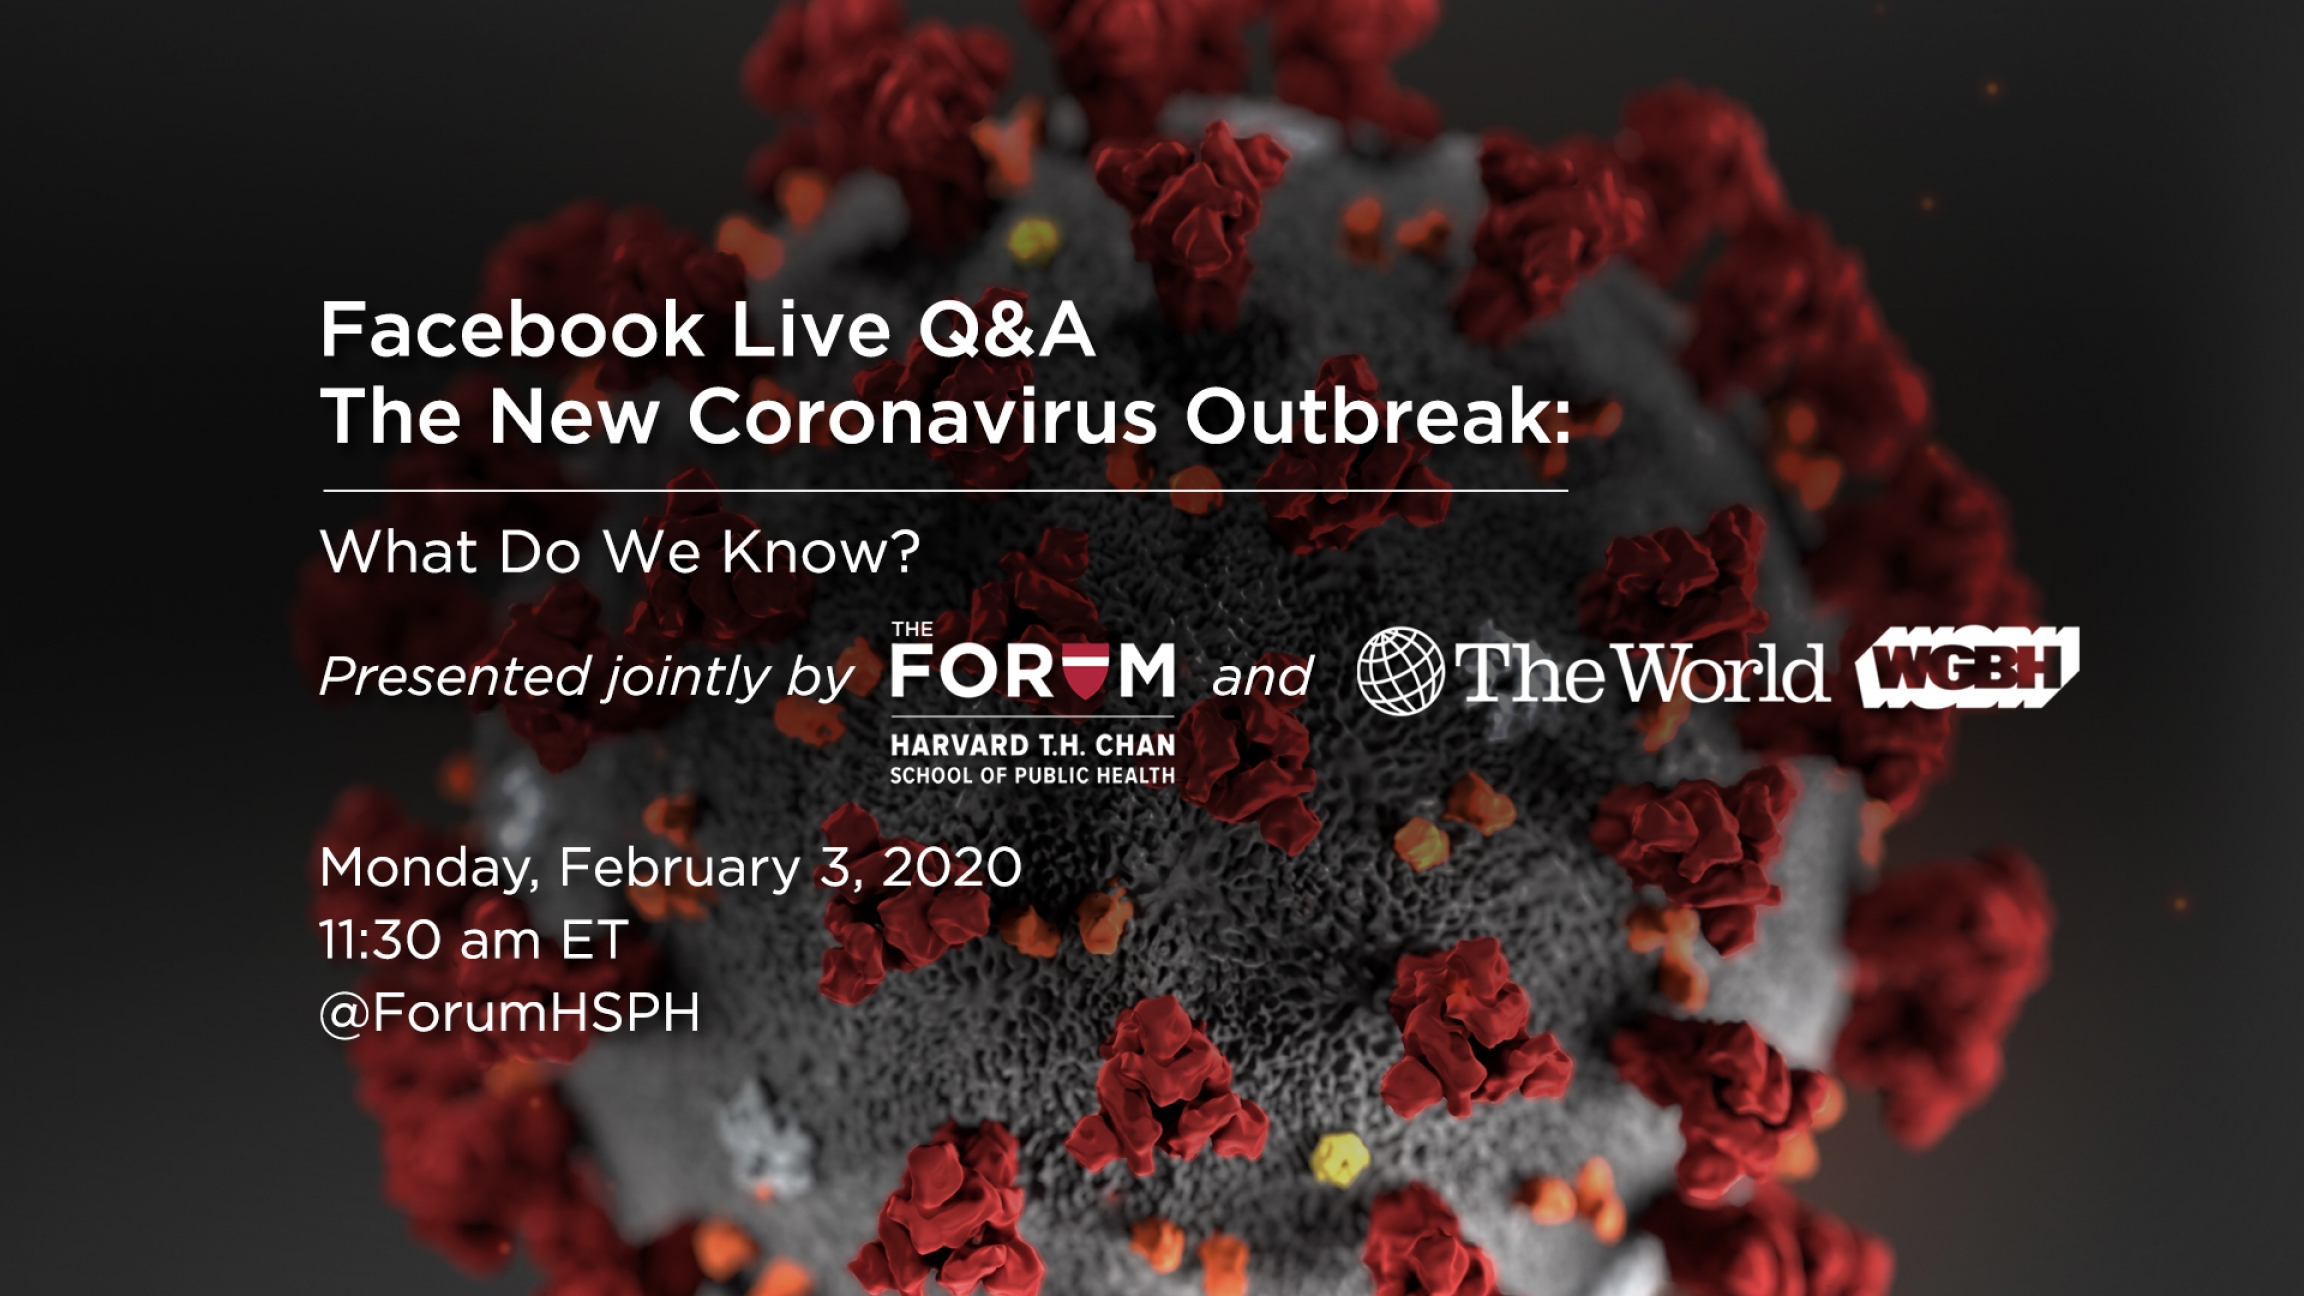 What we know about about the coronavirus outbreak and how to respond